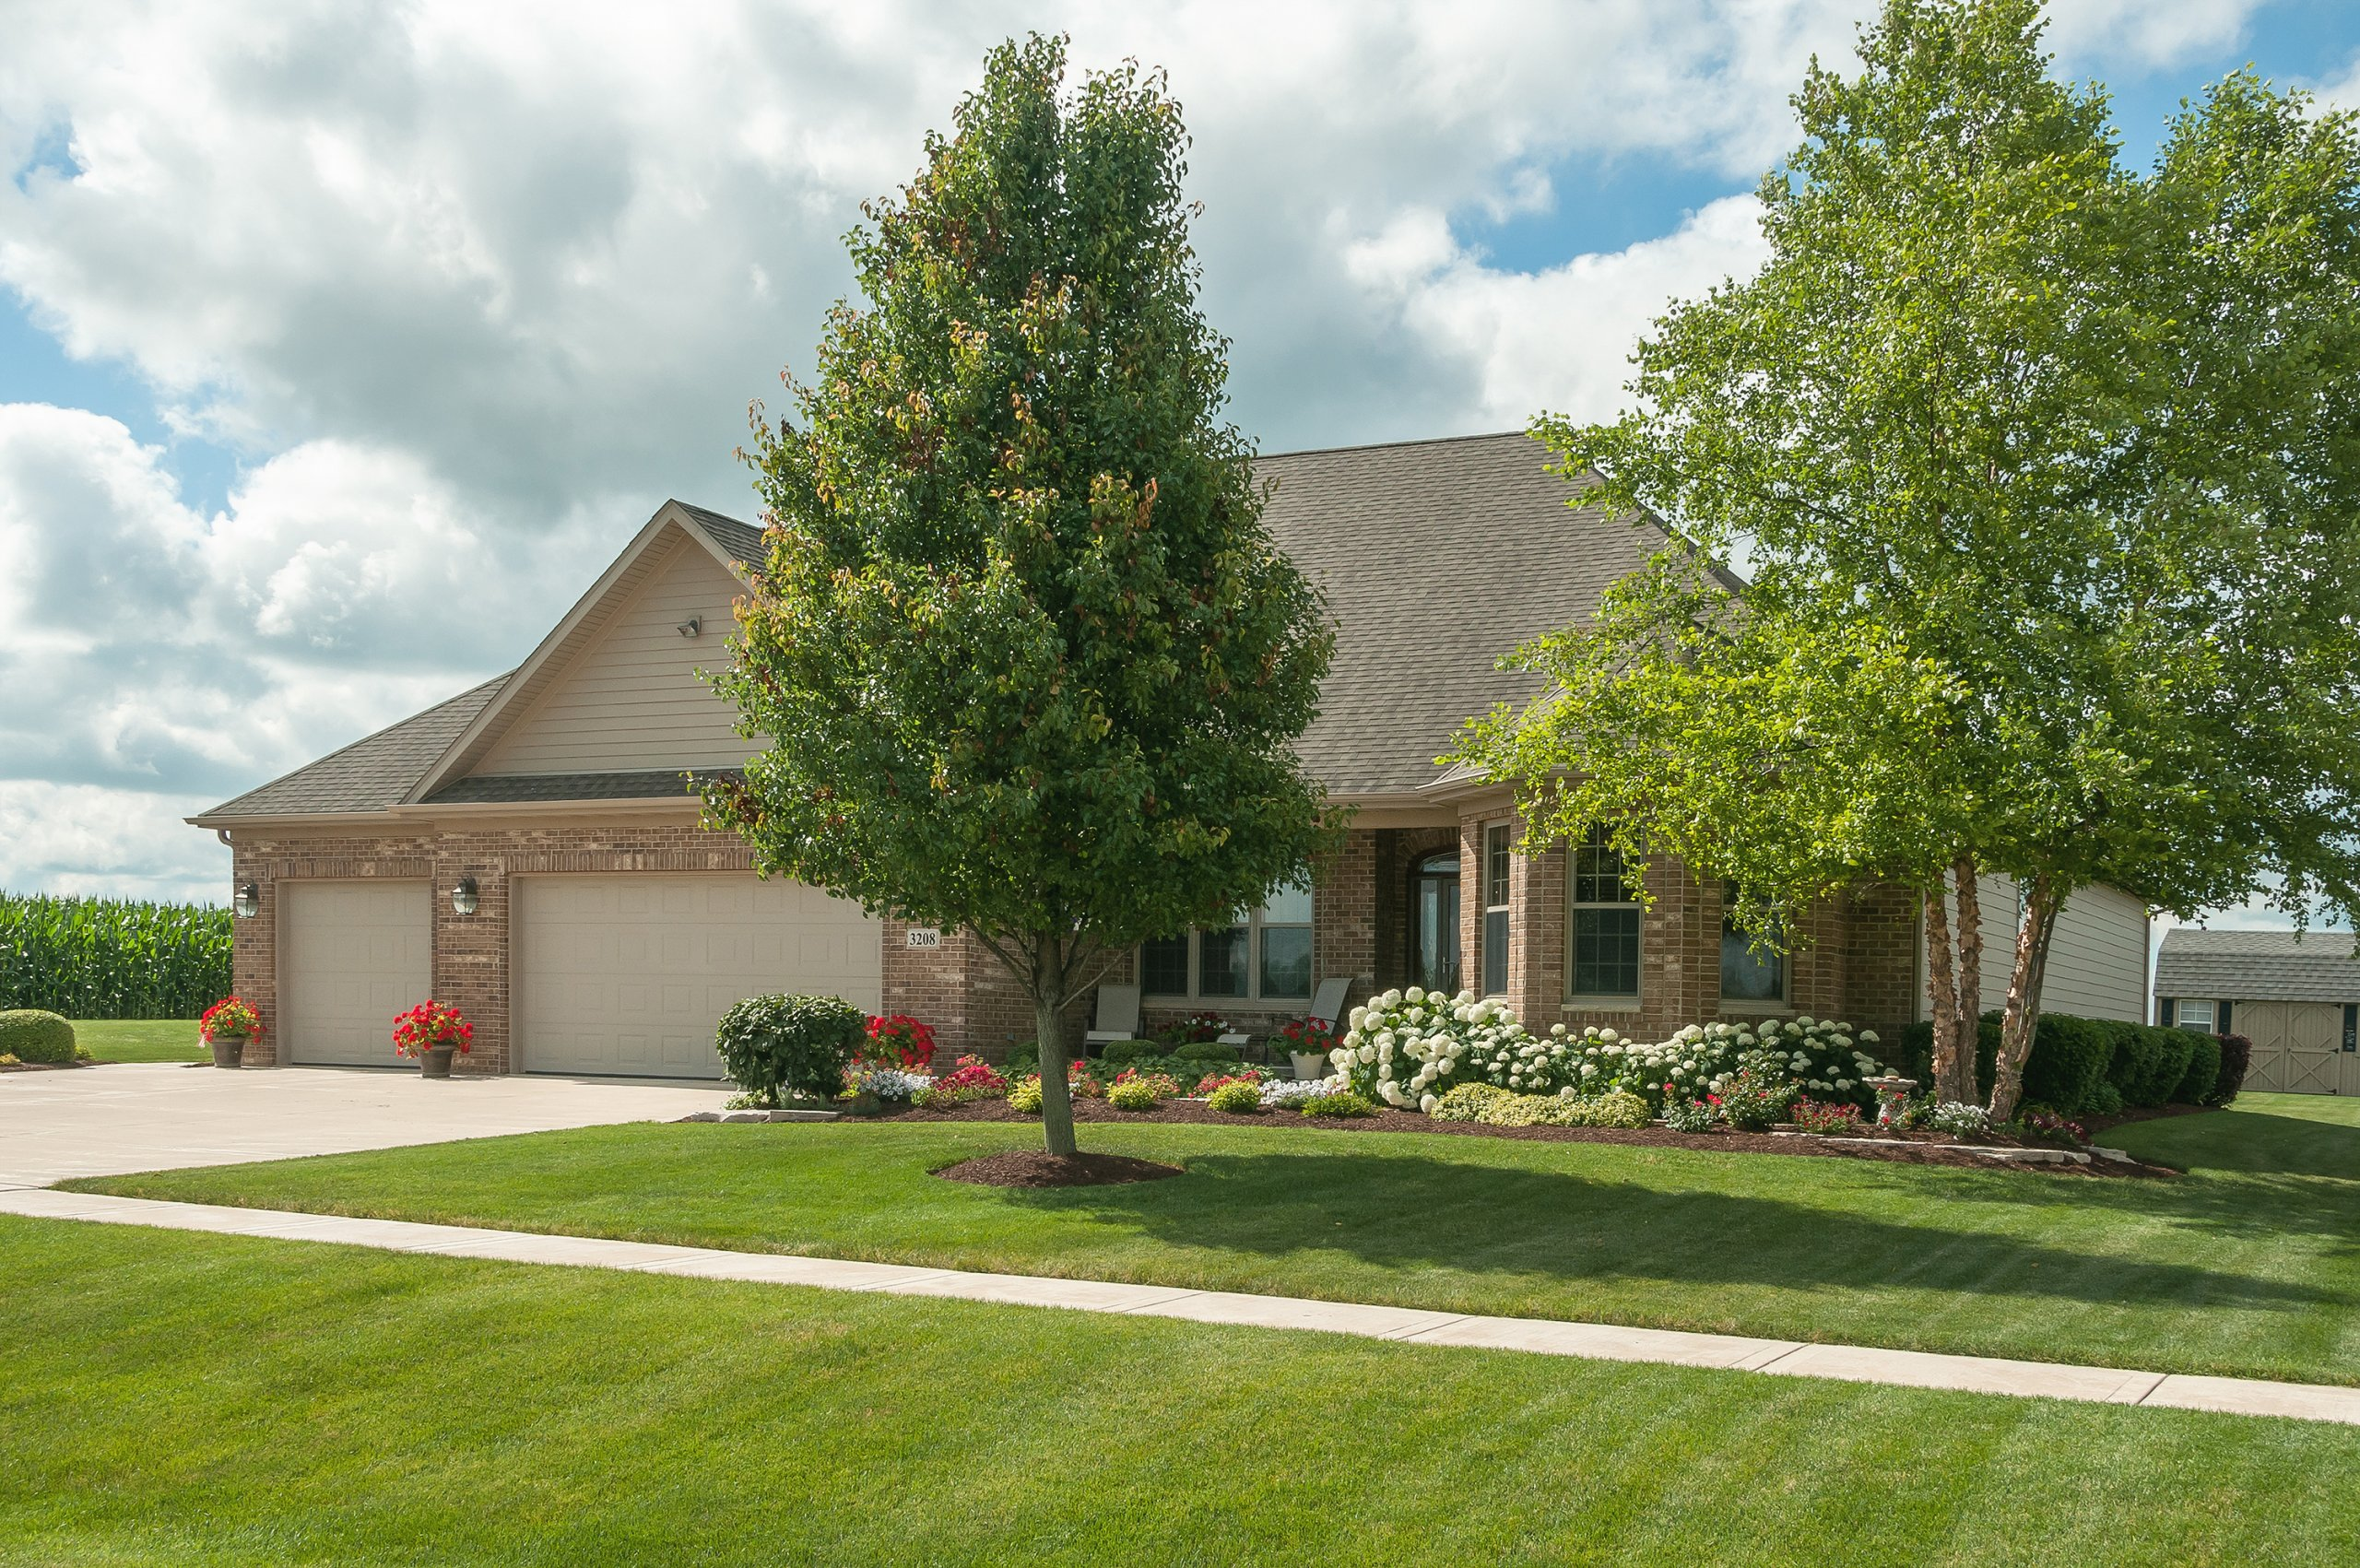 Exterior photography of Dutch Bluff Acres home in Sandwich, IL